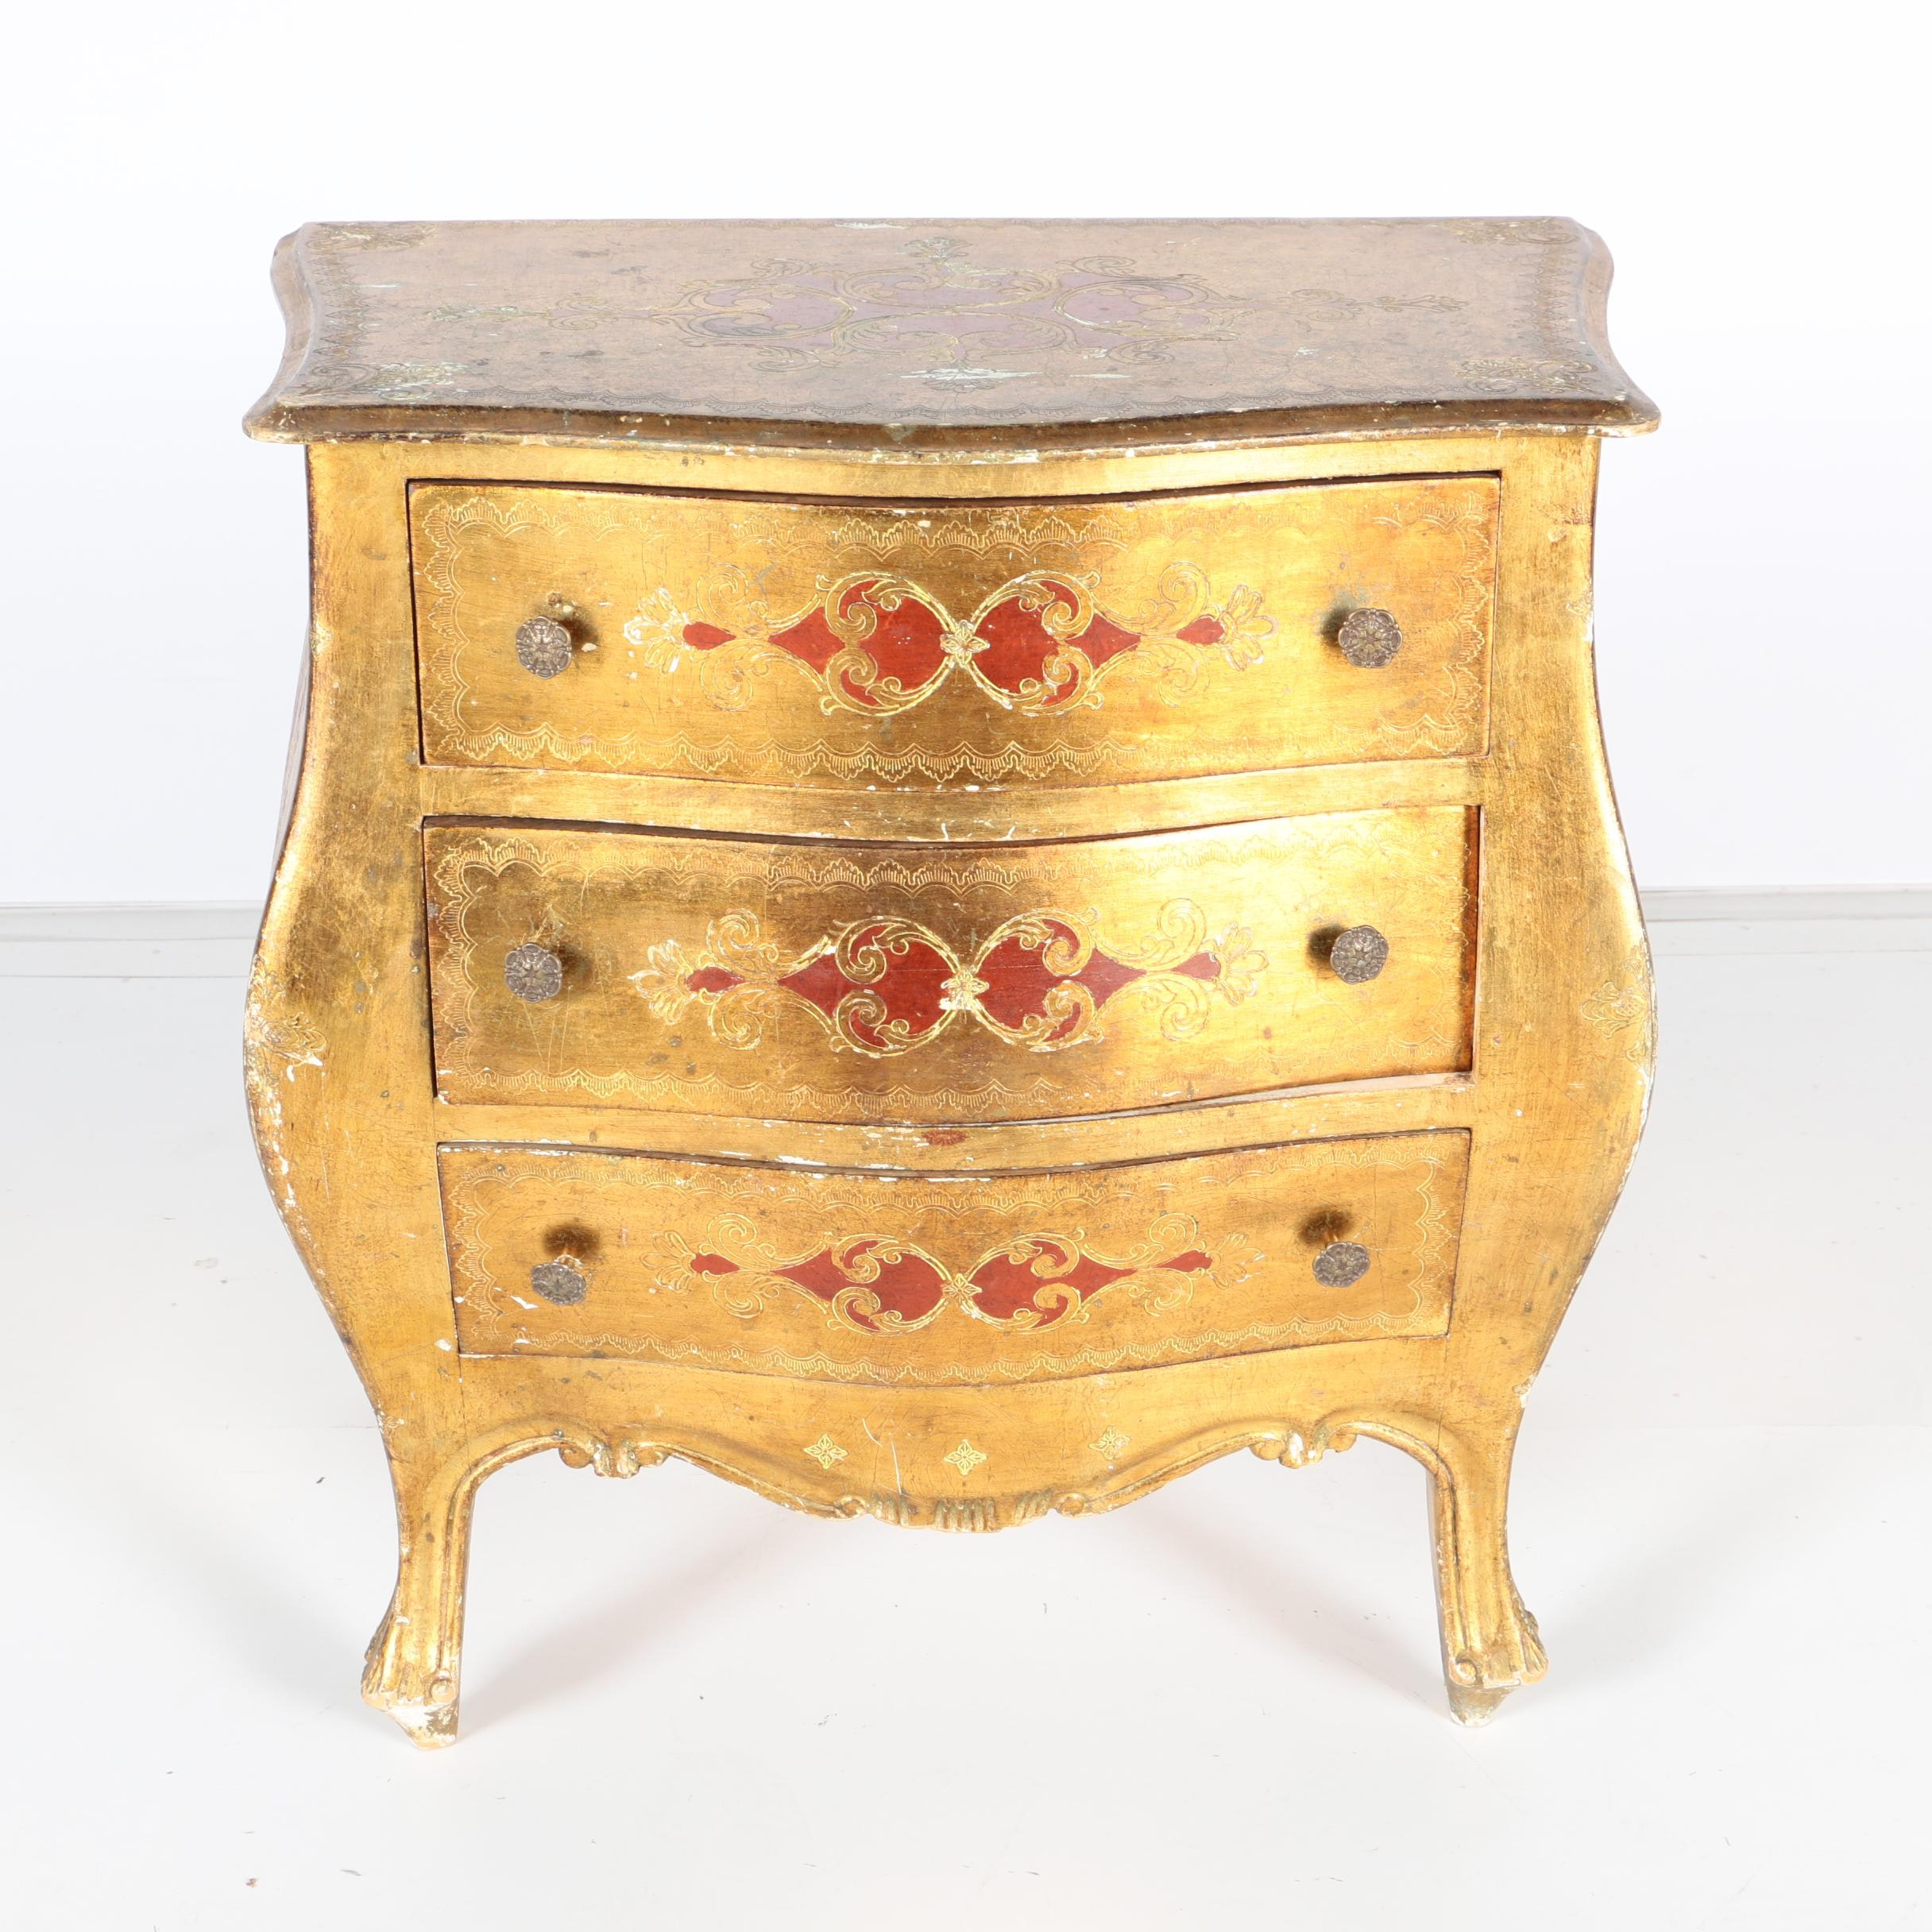 Small Italian Florentine Style Gilt-Wood Chest of Drawers